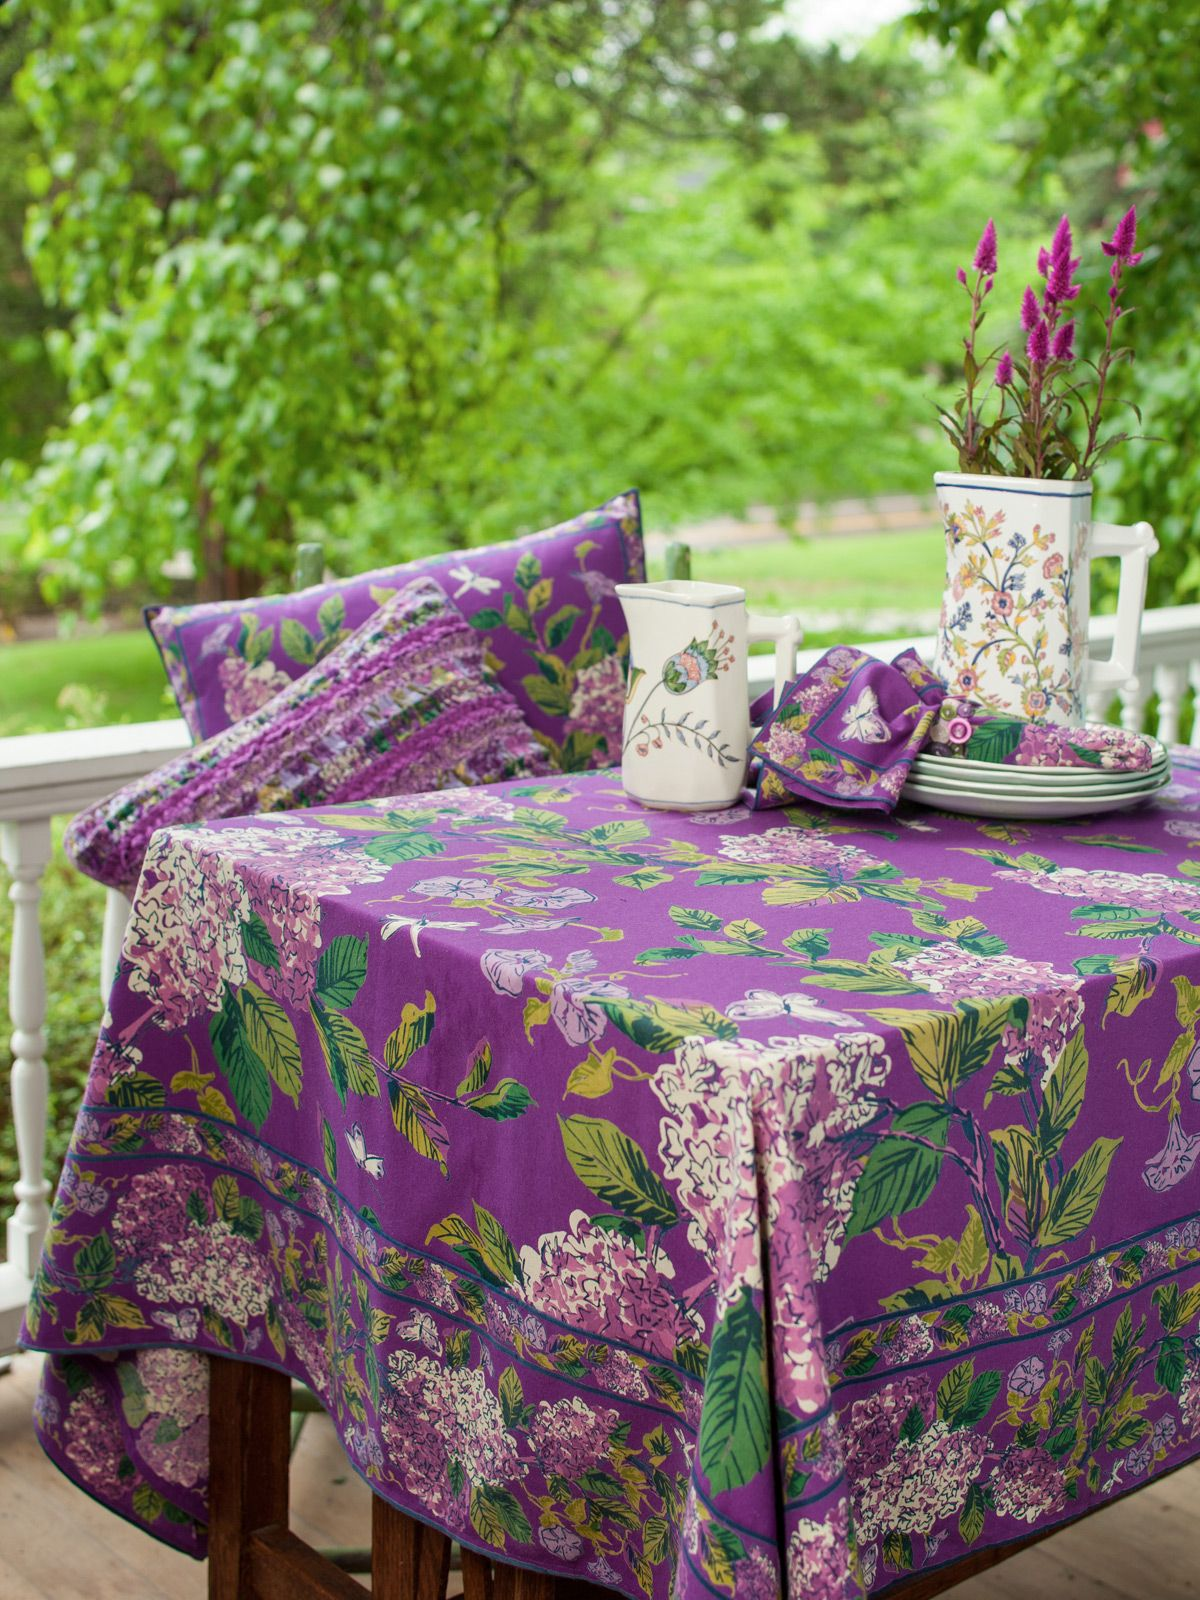 Delightful April Cornell Tablecloths U0026 Table Linens, Unique Designs For Home U0026  Kitchen. Inspired By Nature, April Cornell Offers Color U0026 Superior Quality.